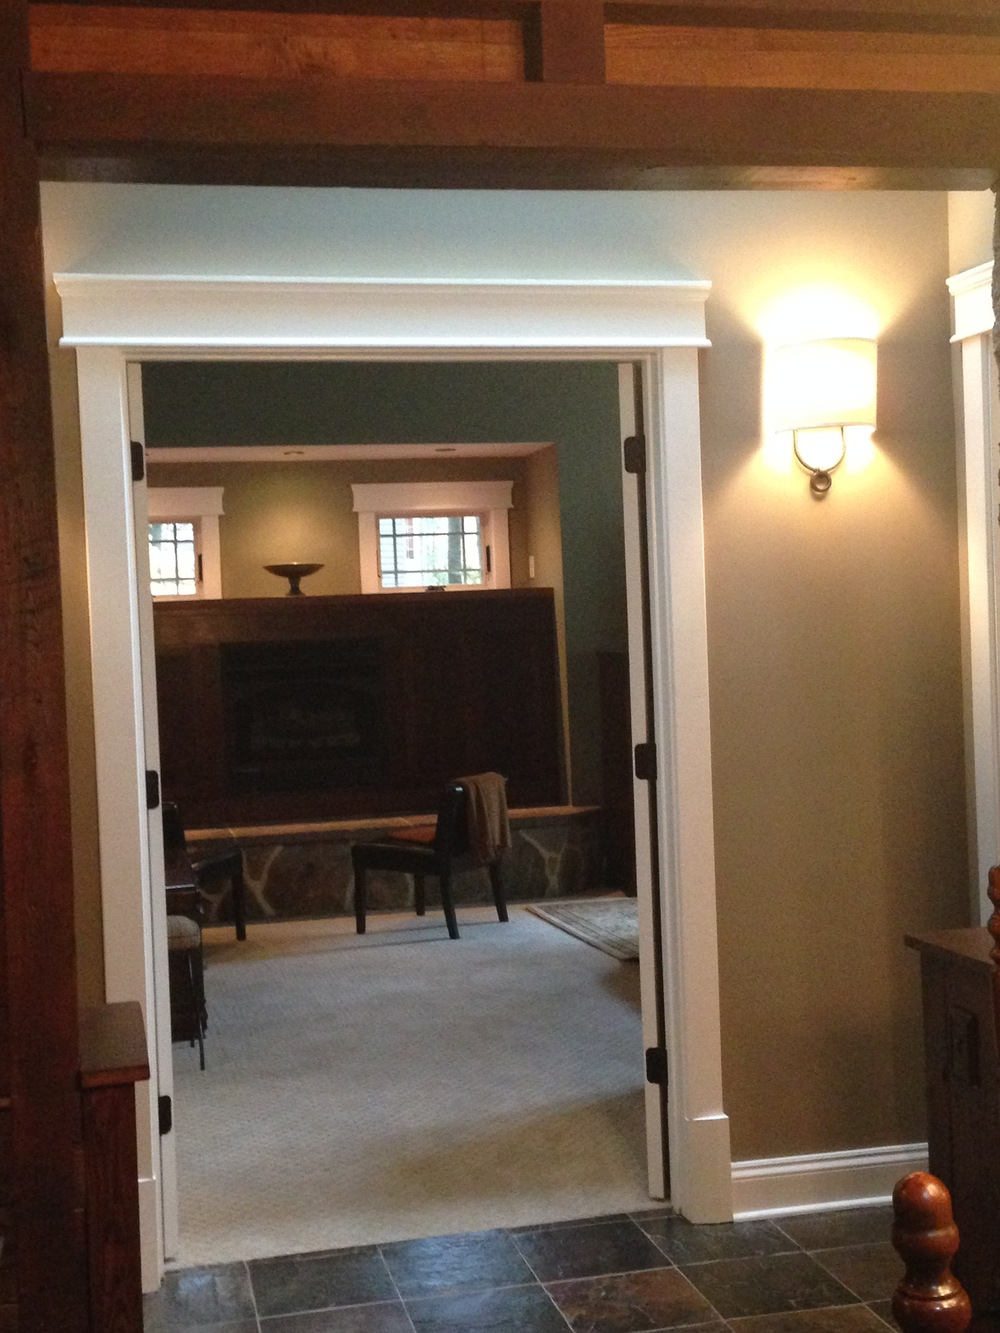 Picture taken from the original dining room, across a new vestibule and into the master bedroom.